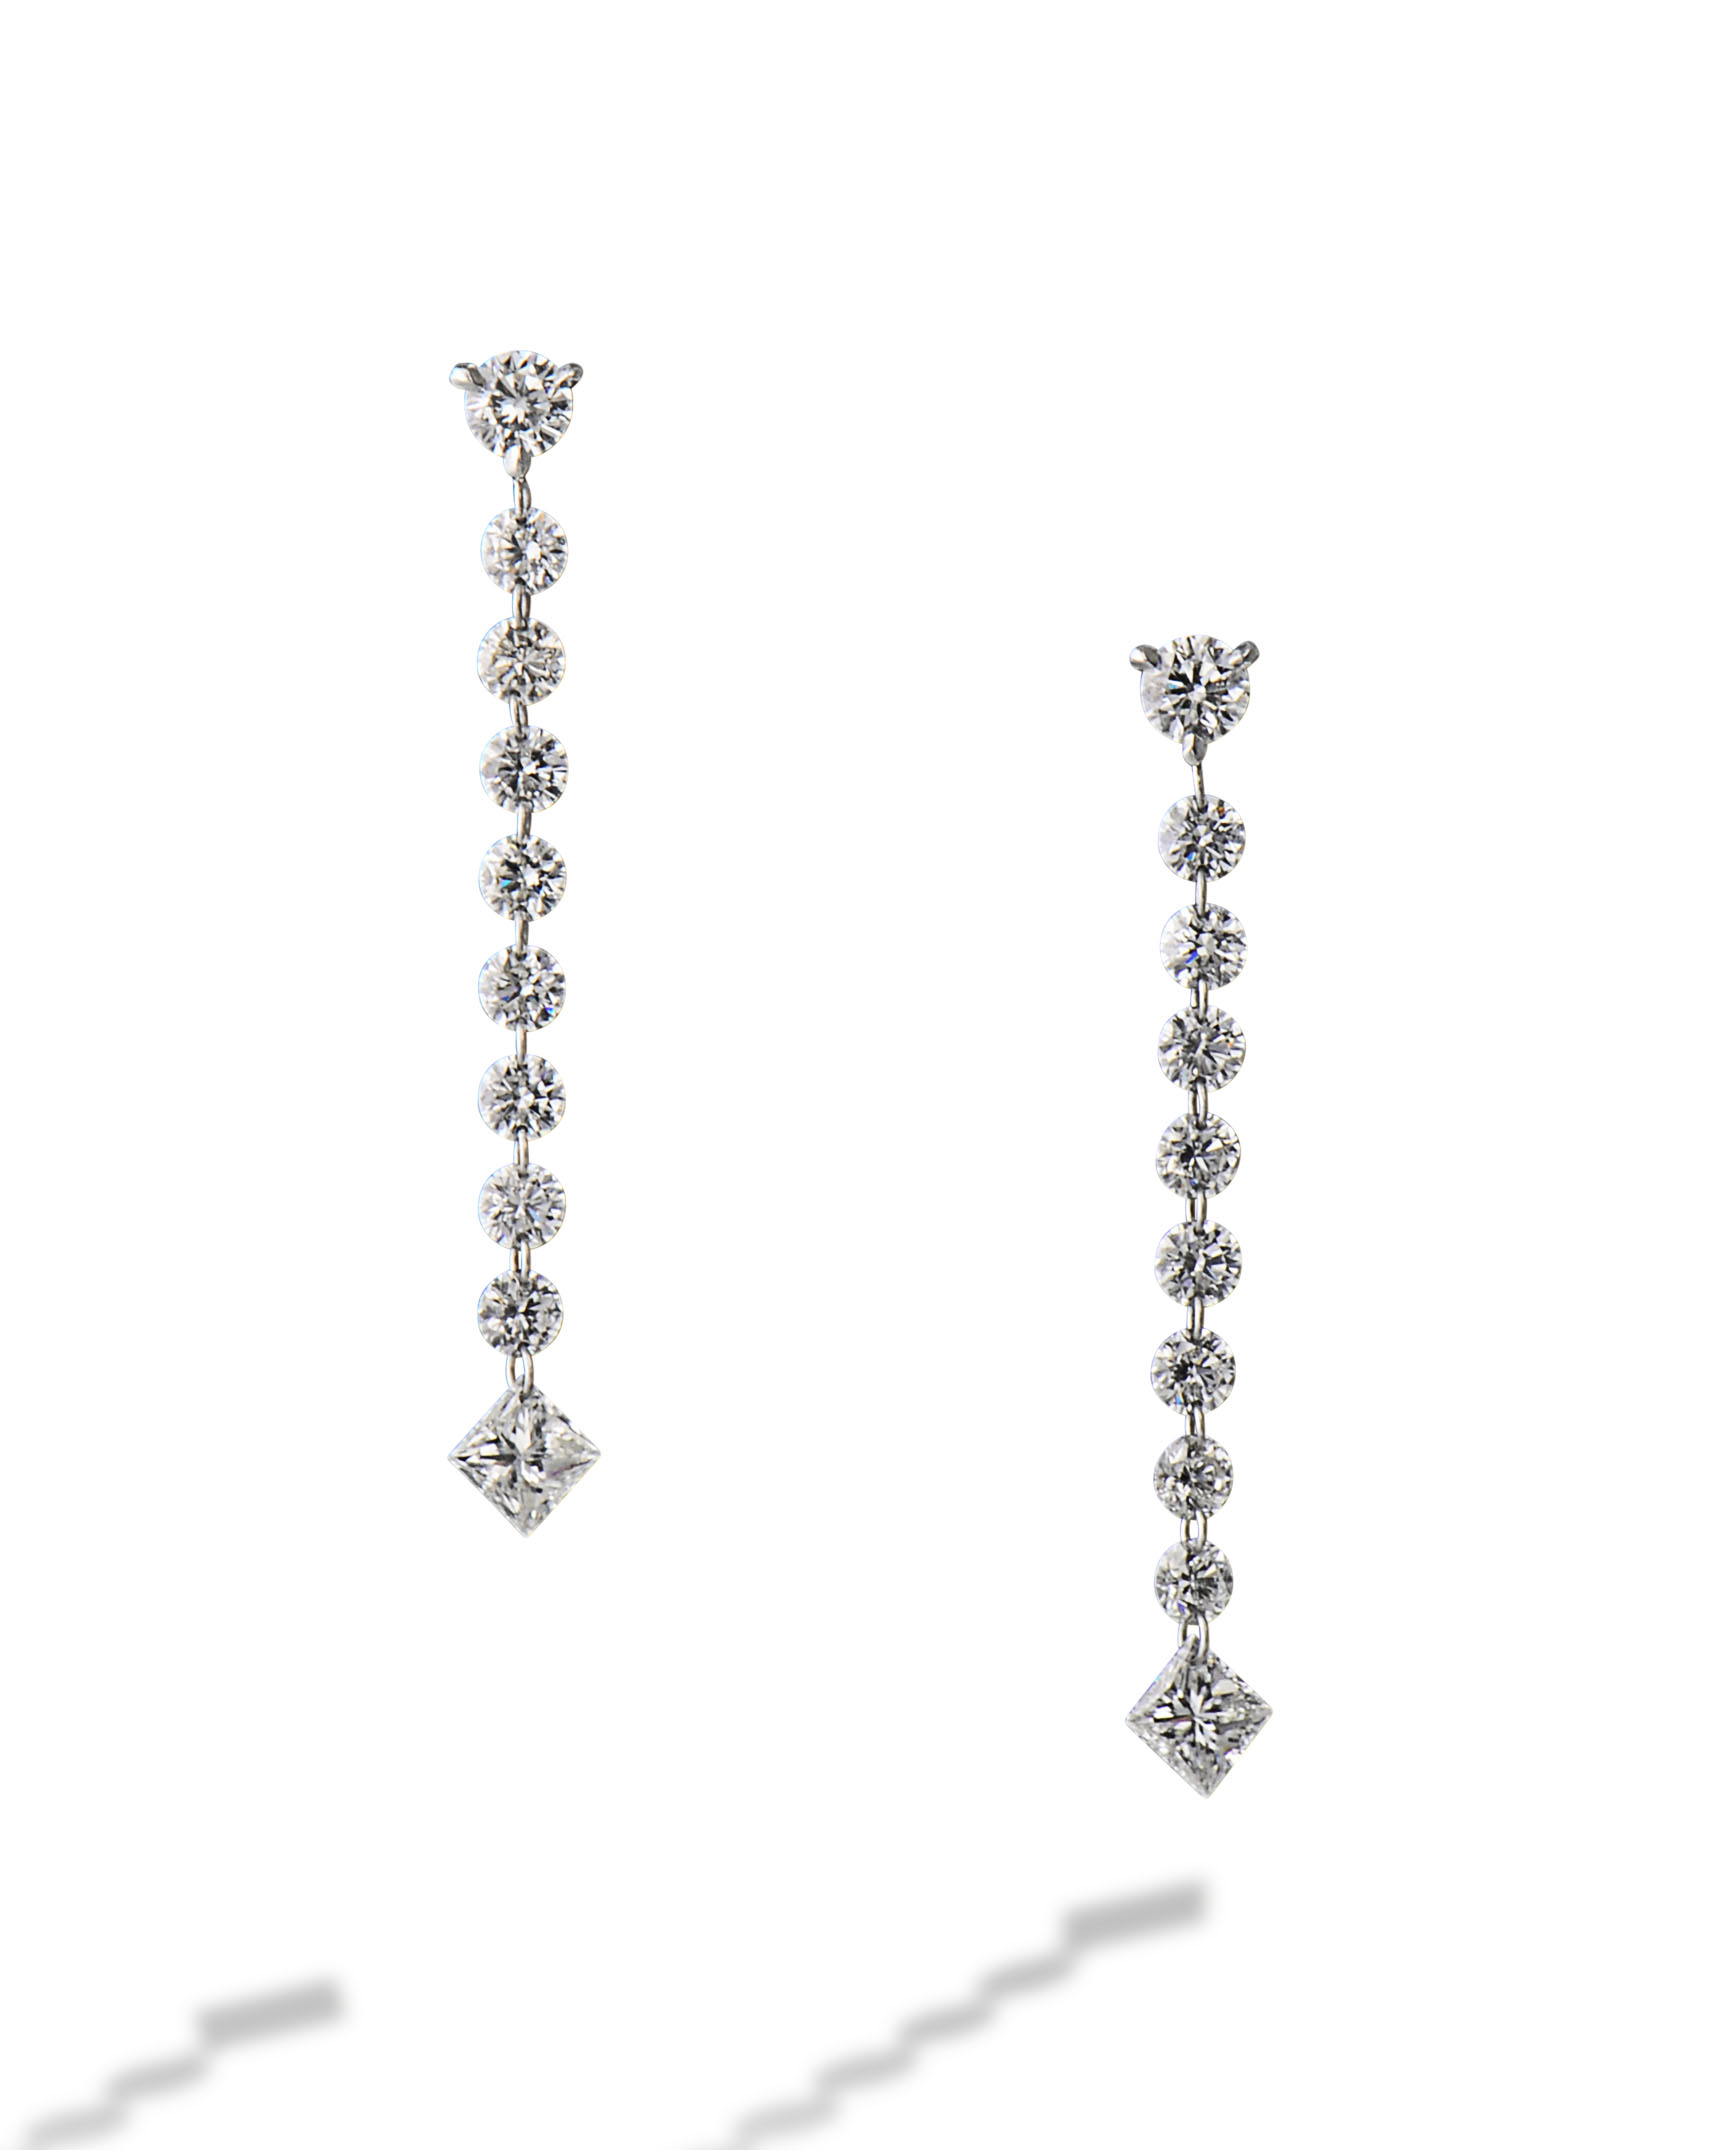 Platinum Floating Earrings